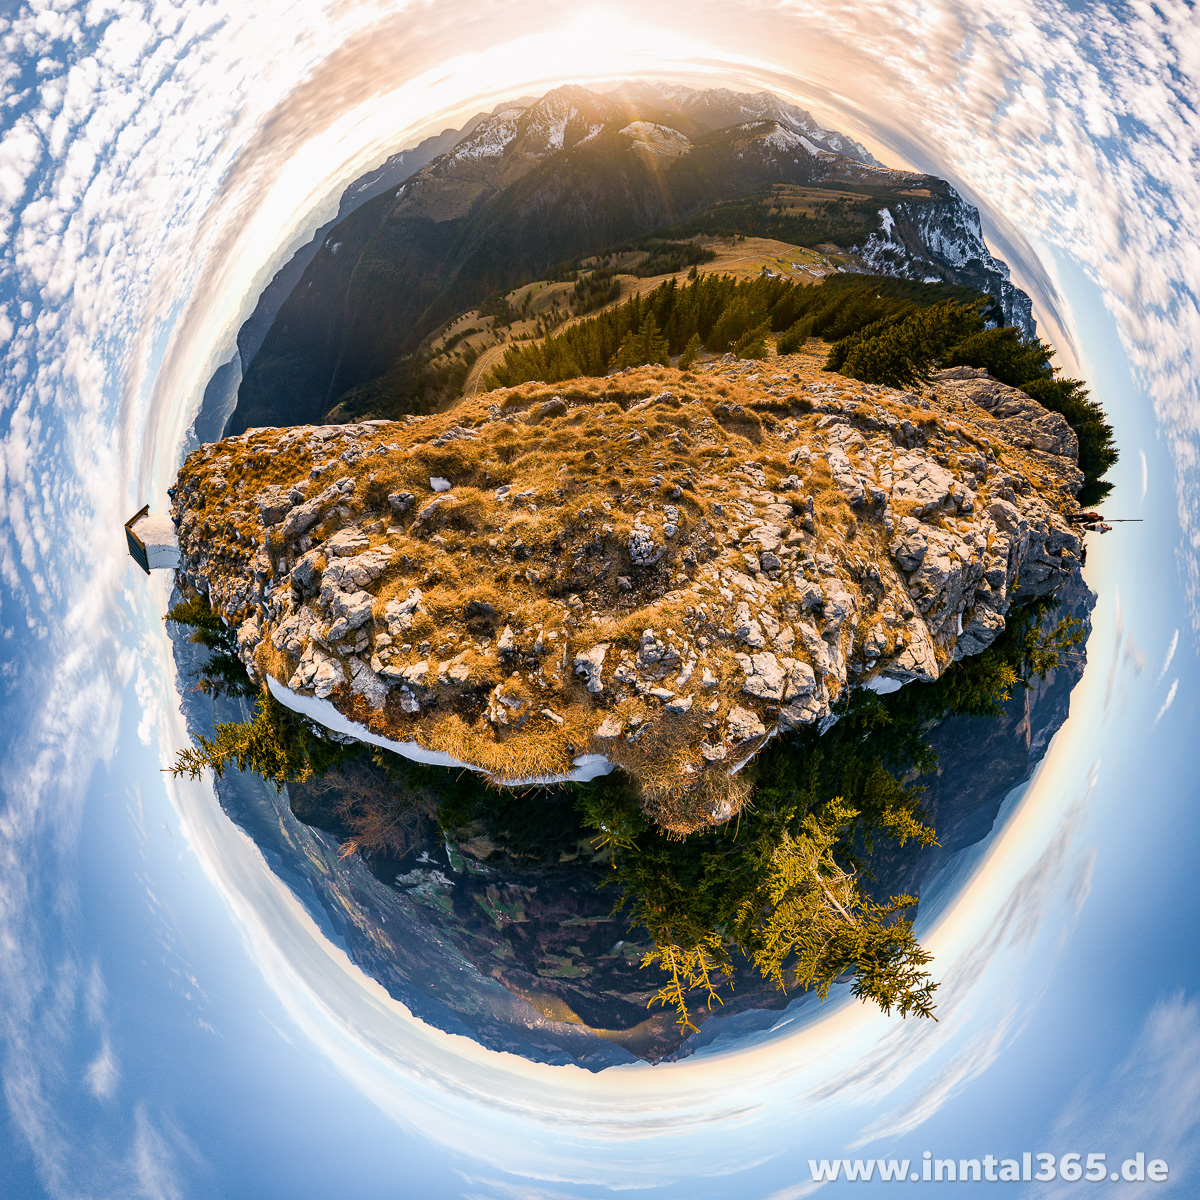 08.12.2015 - Brünnsteingipfel im Little-Planet-Panorama.